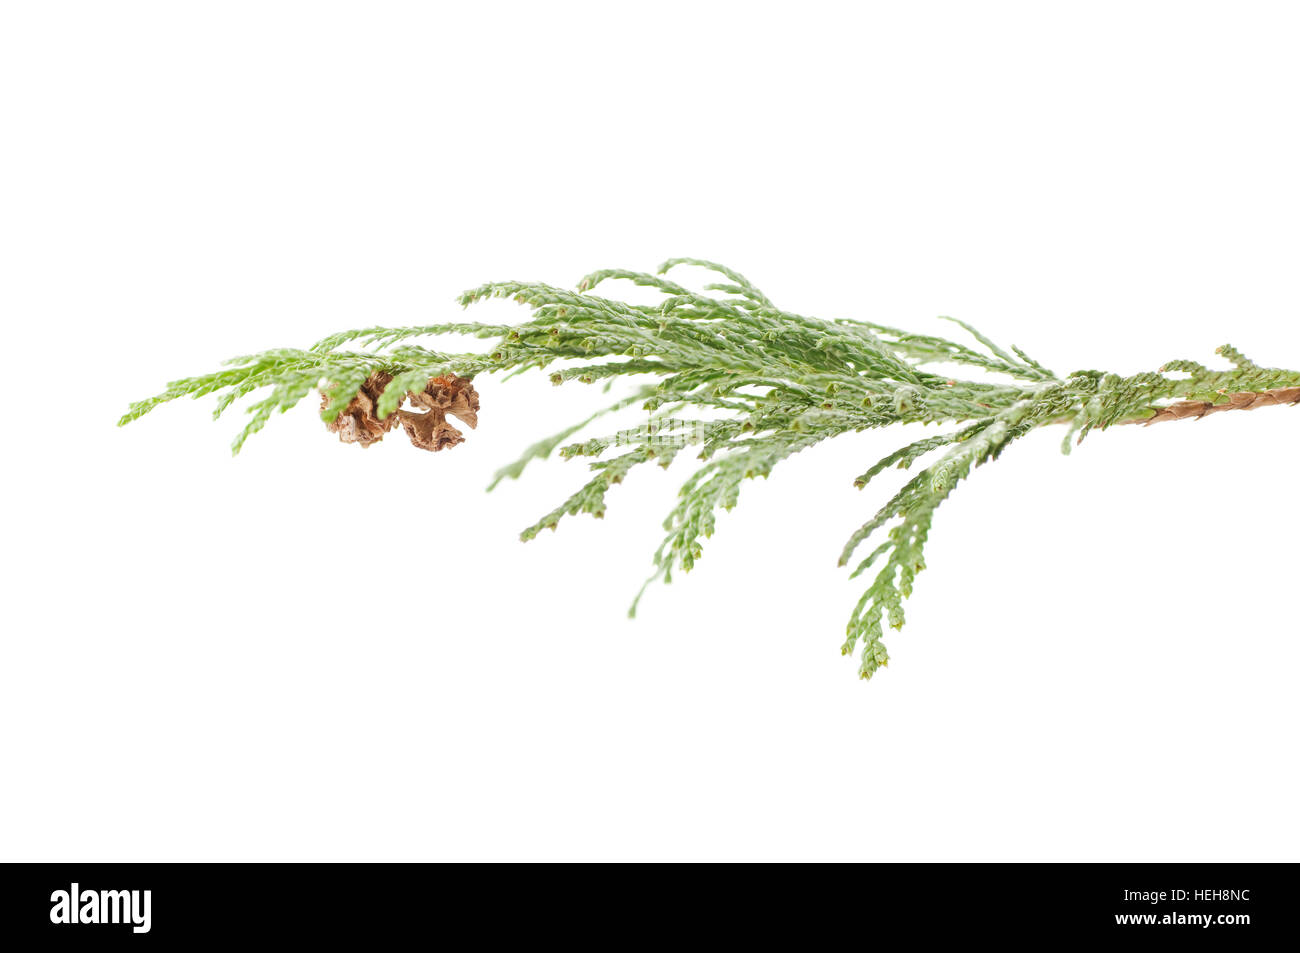 a twig of cypress on a white background - Stock Image